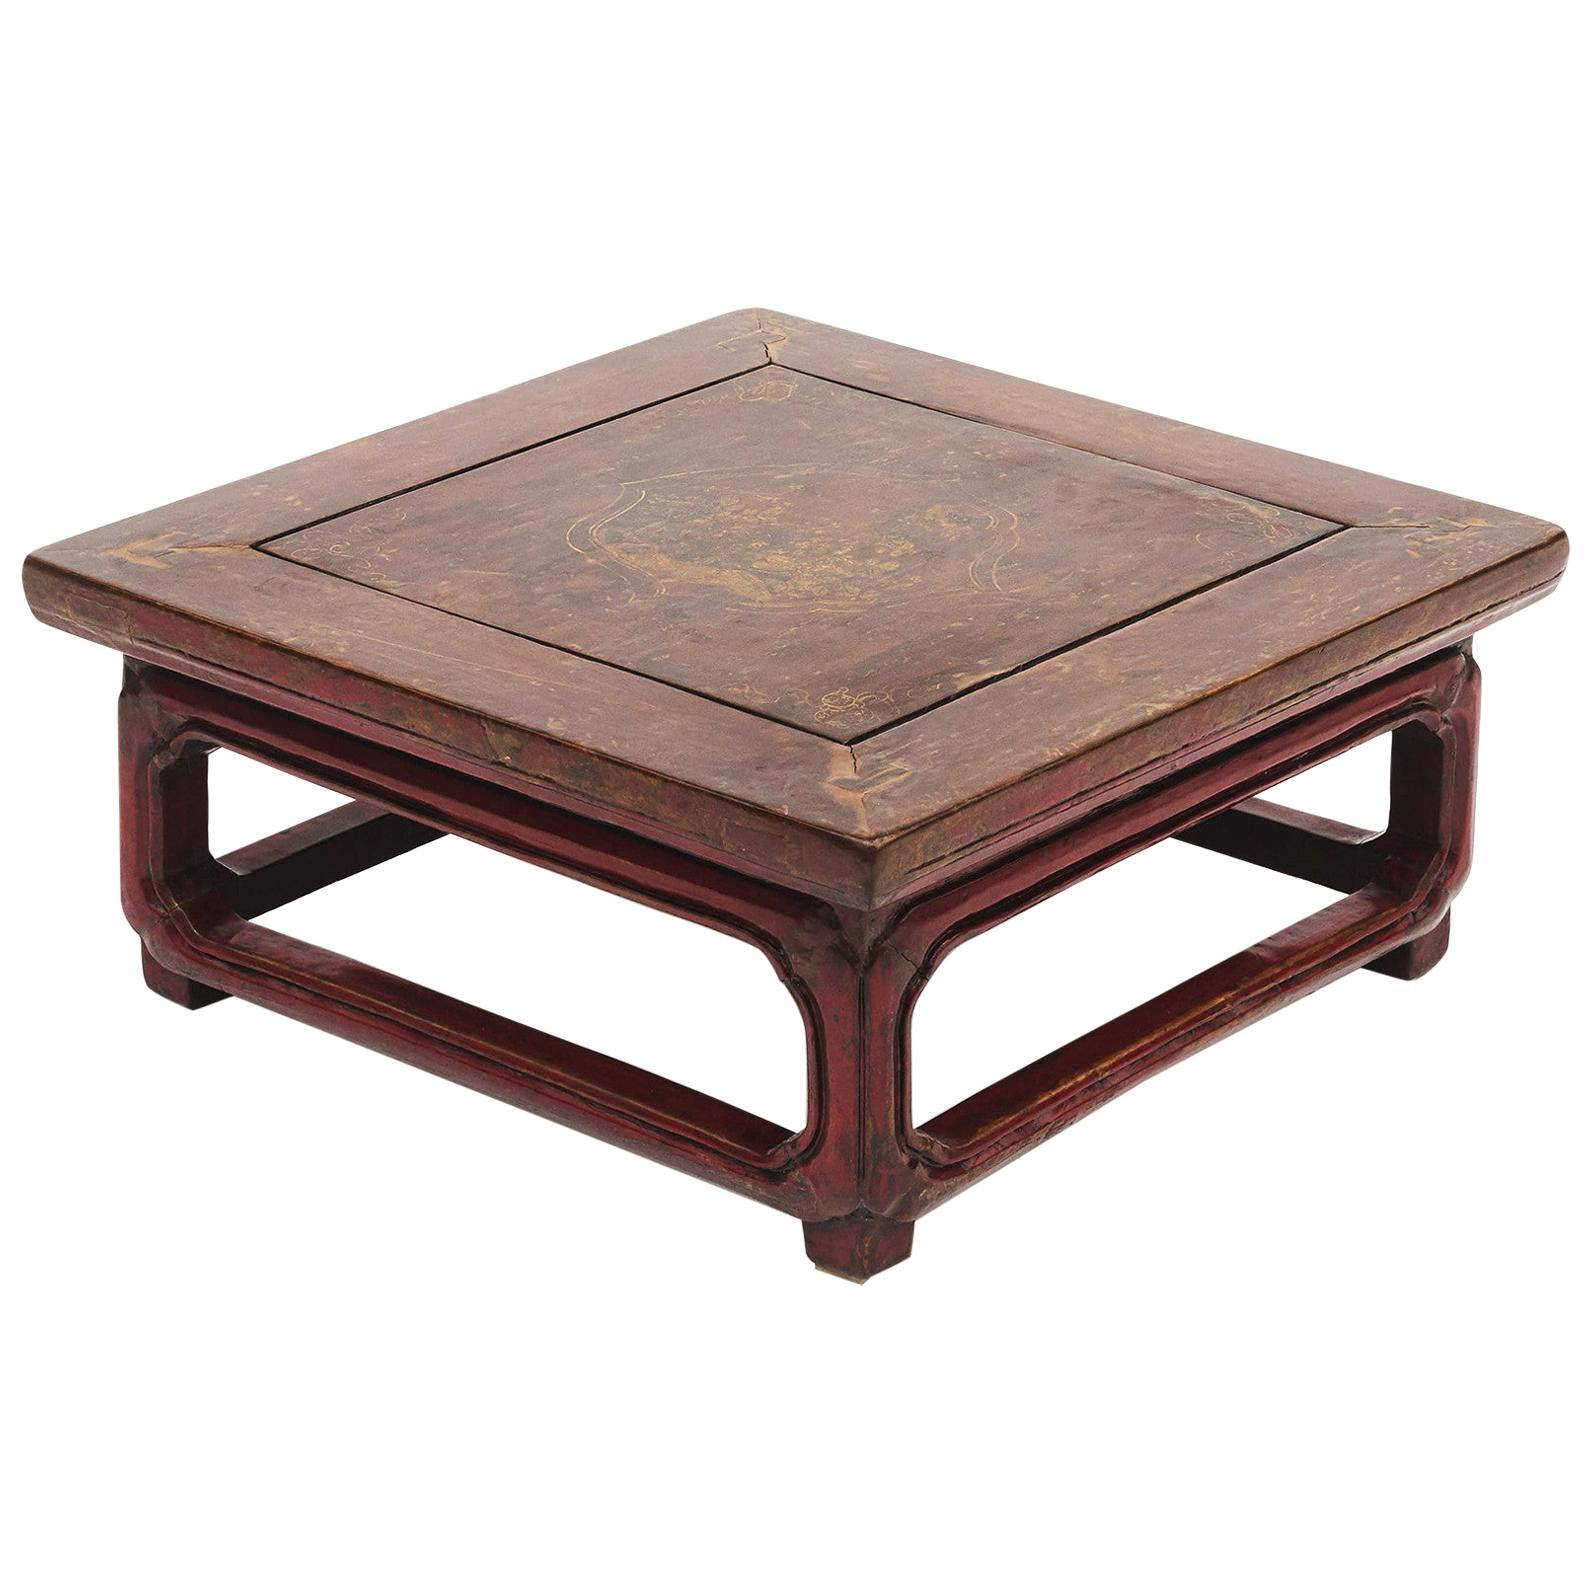 Chinese Red Lacquer Kang Table, Manchuria, 1850-1870